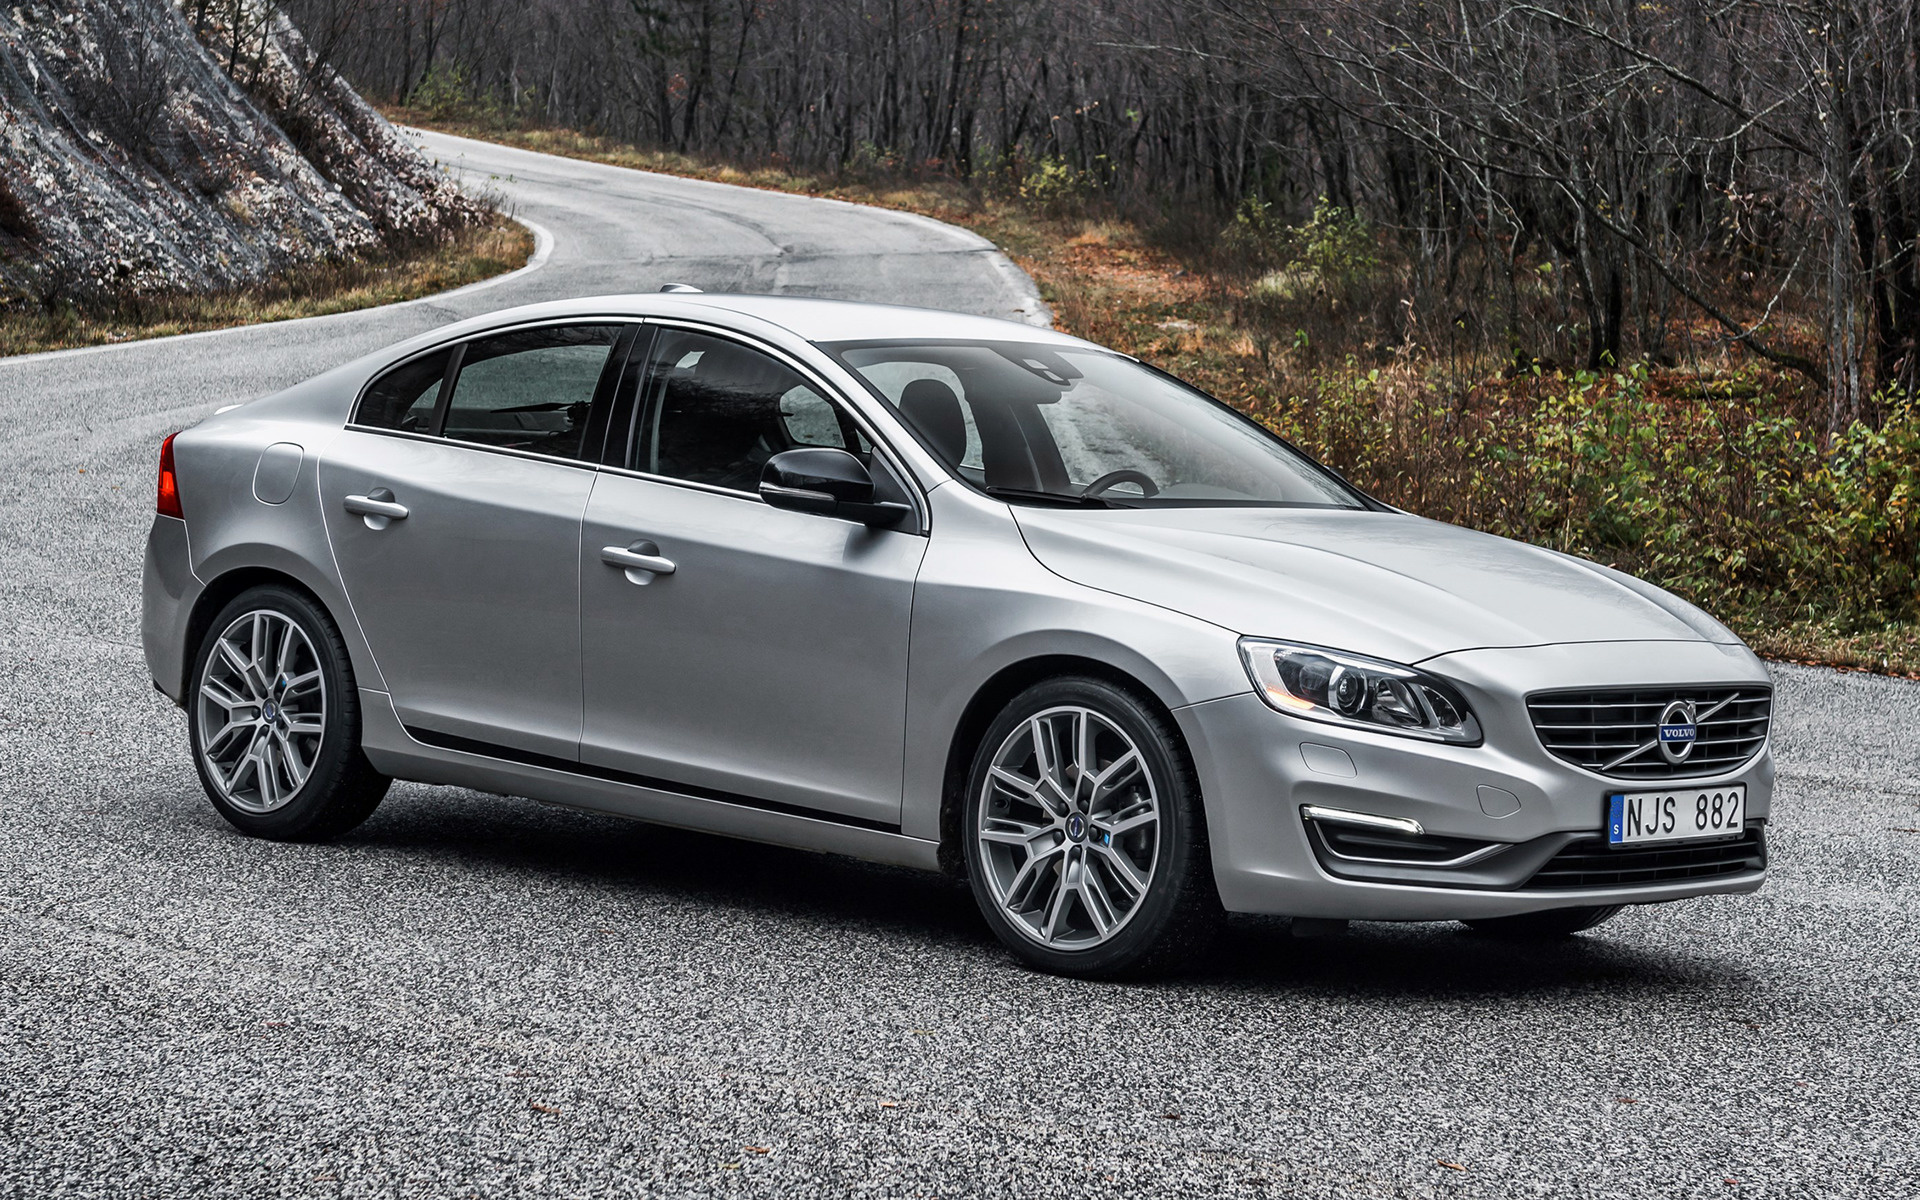 volvo s60 polestar parts 2016 wallpapers and hd images car pixel. Black Bedroom Furniture Sets. Home Design Ideas